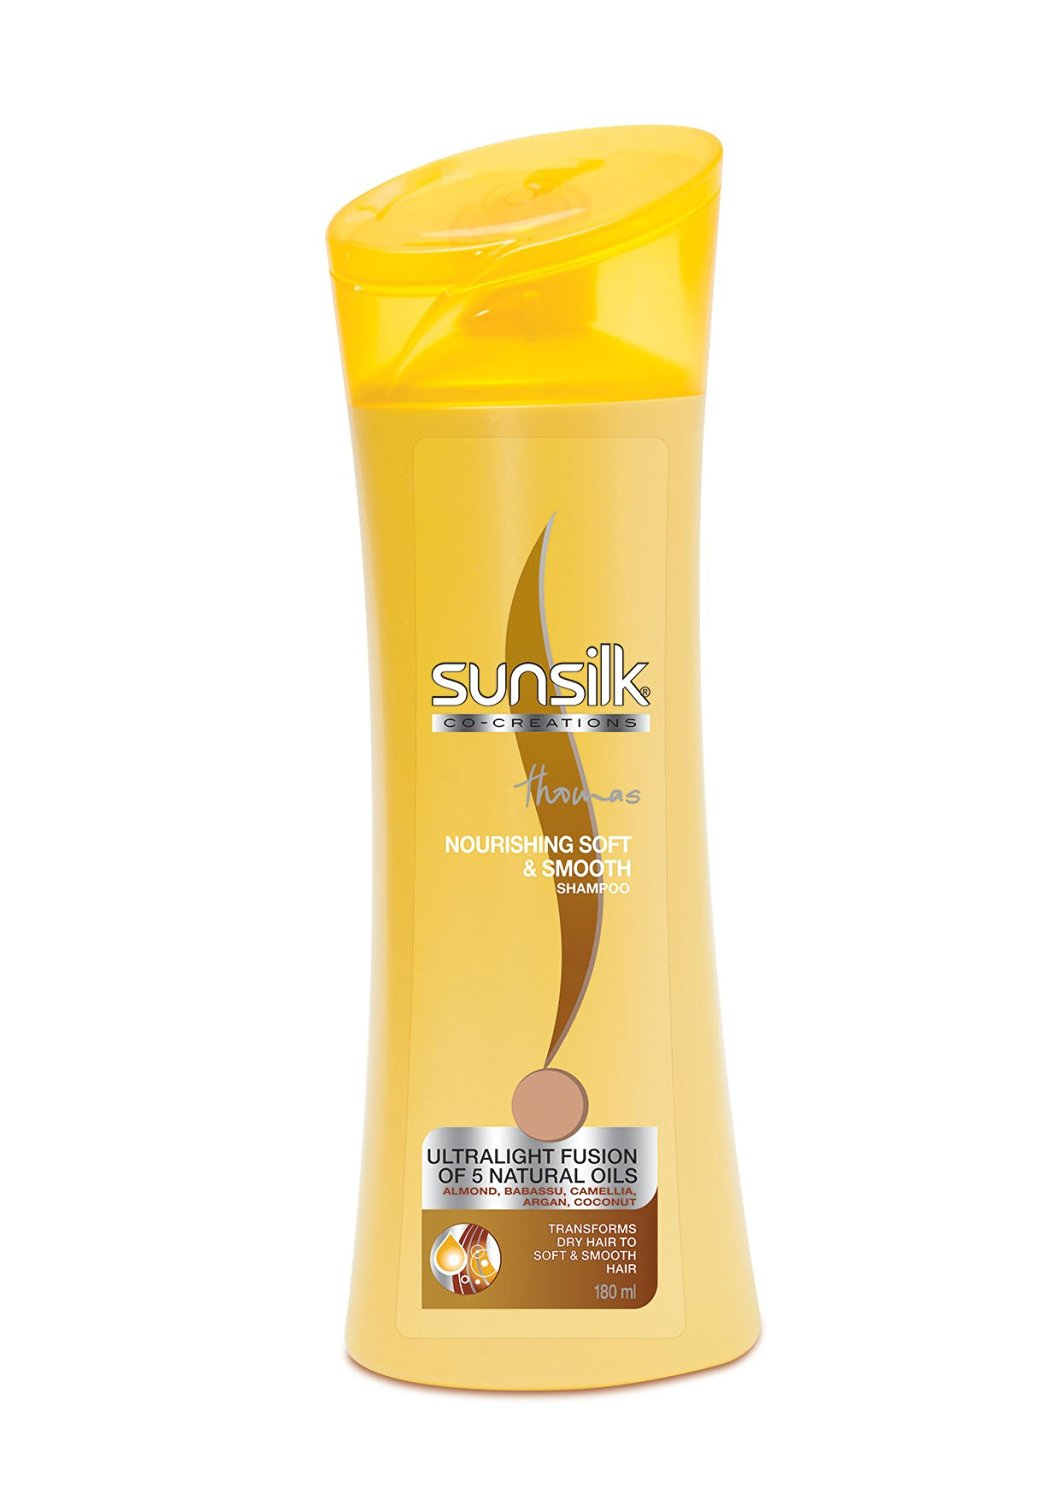 SUNSILK NOURISHING SOFT & SMOOTH SHAMPOO (YELLOW) - 180 ML